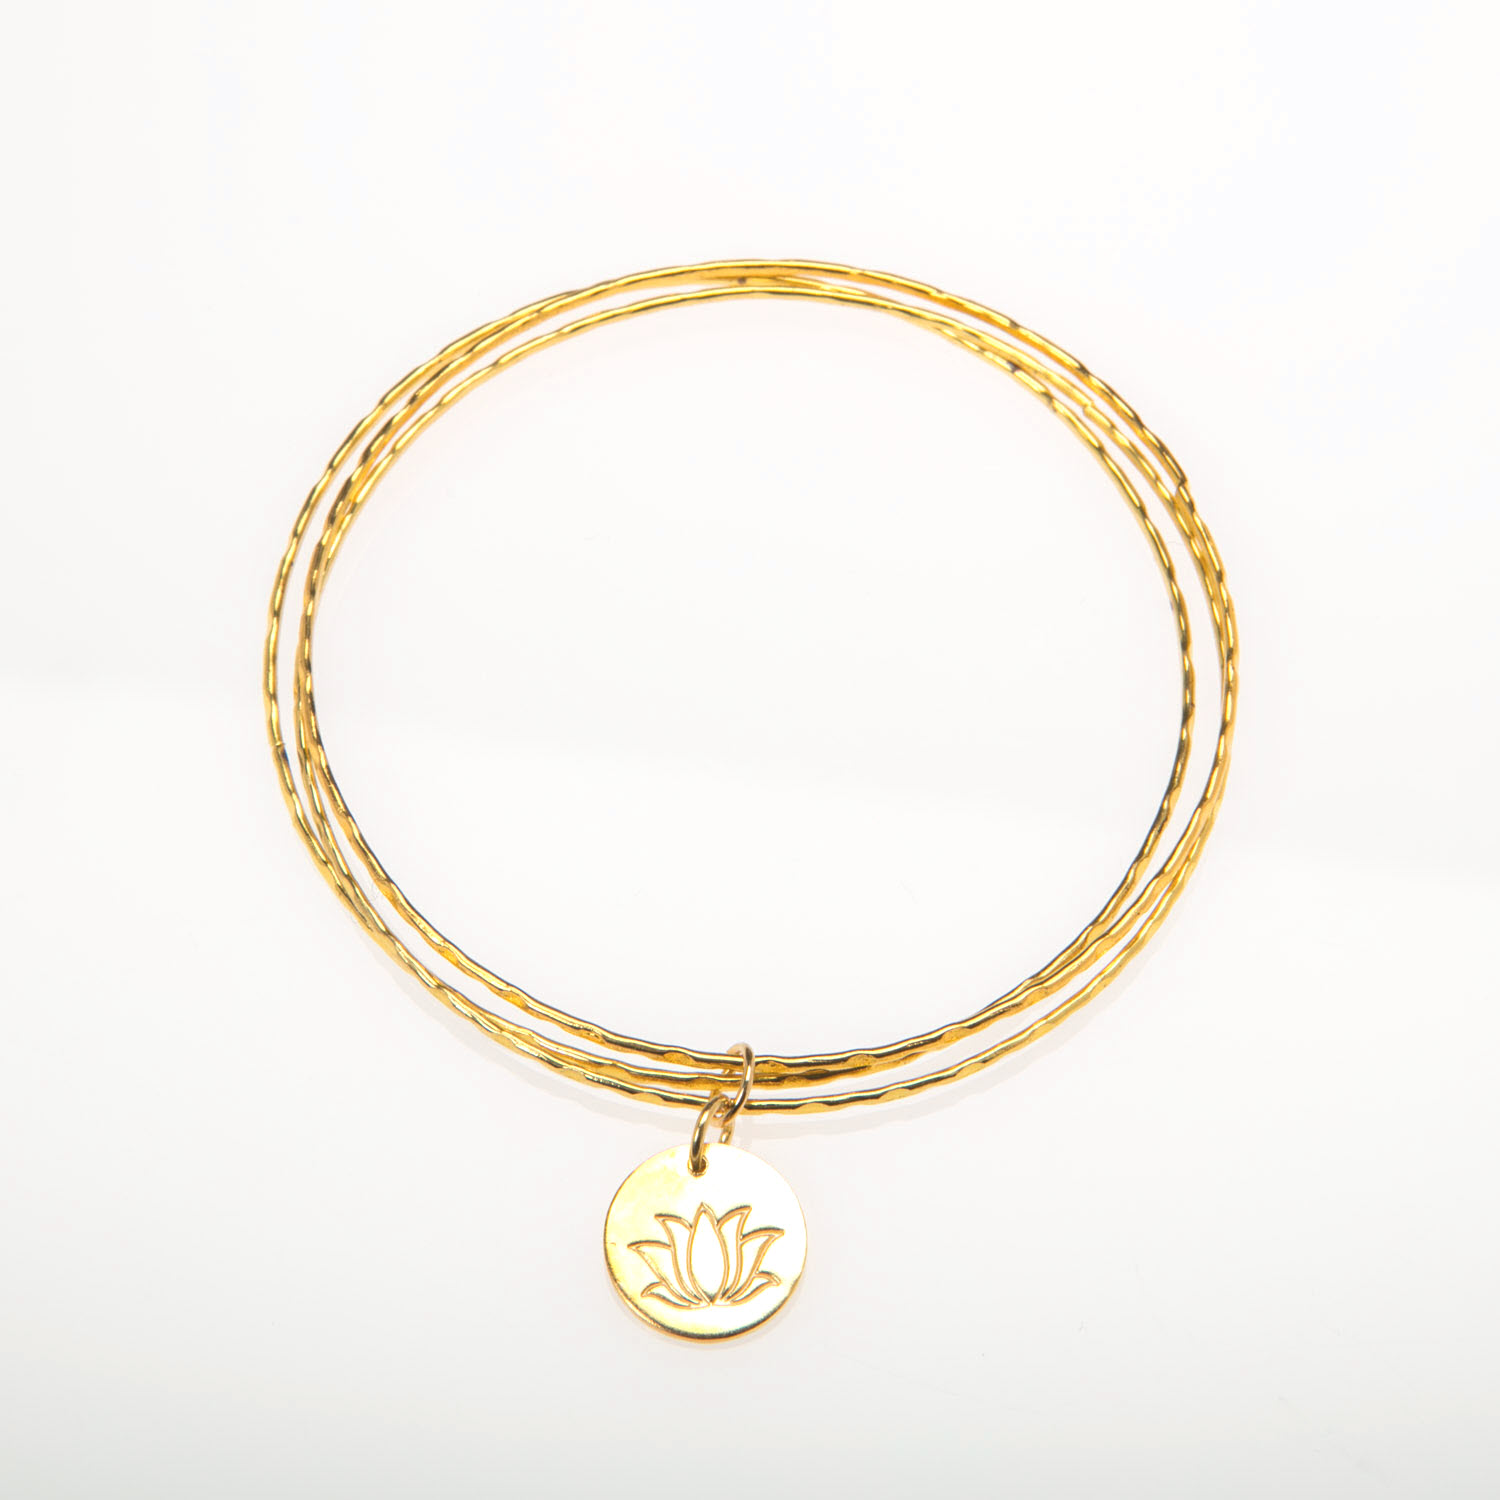 Gold bangles with lotus flower disc charm izmirmasajfo